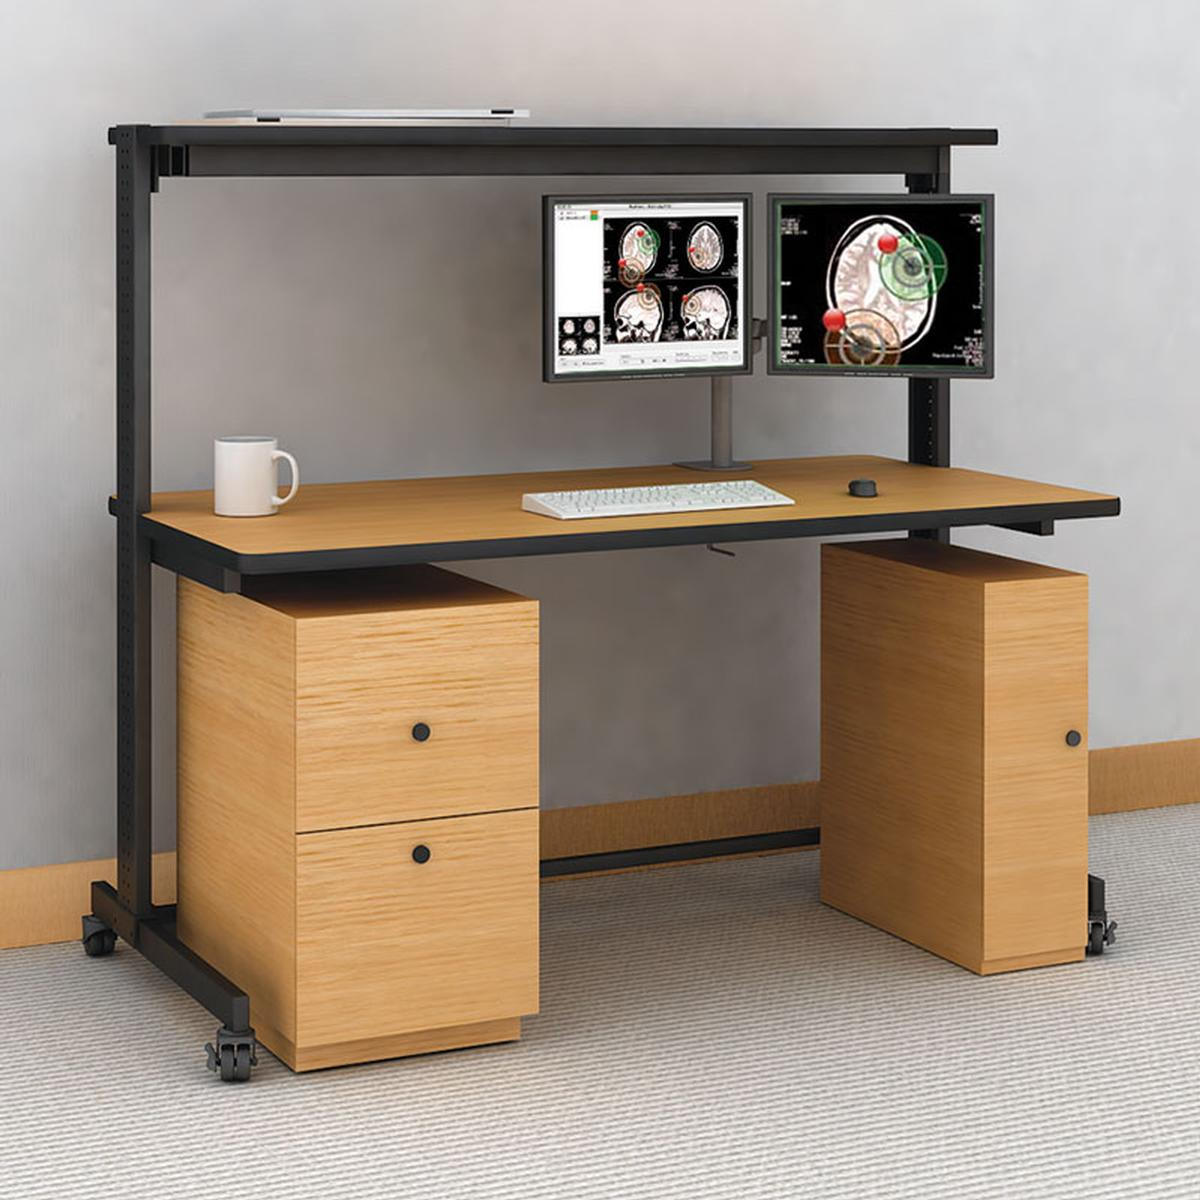 772297 Steel Frame Computer Table With Cabinets Afc